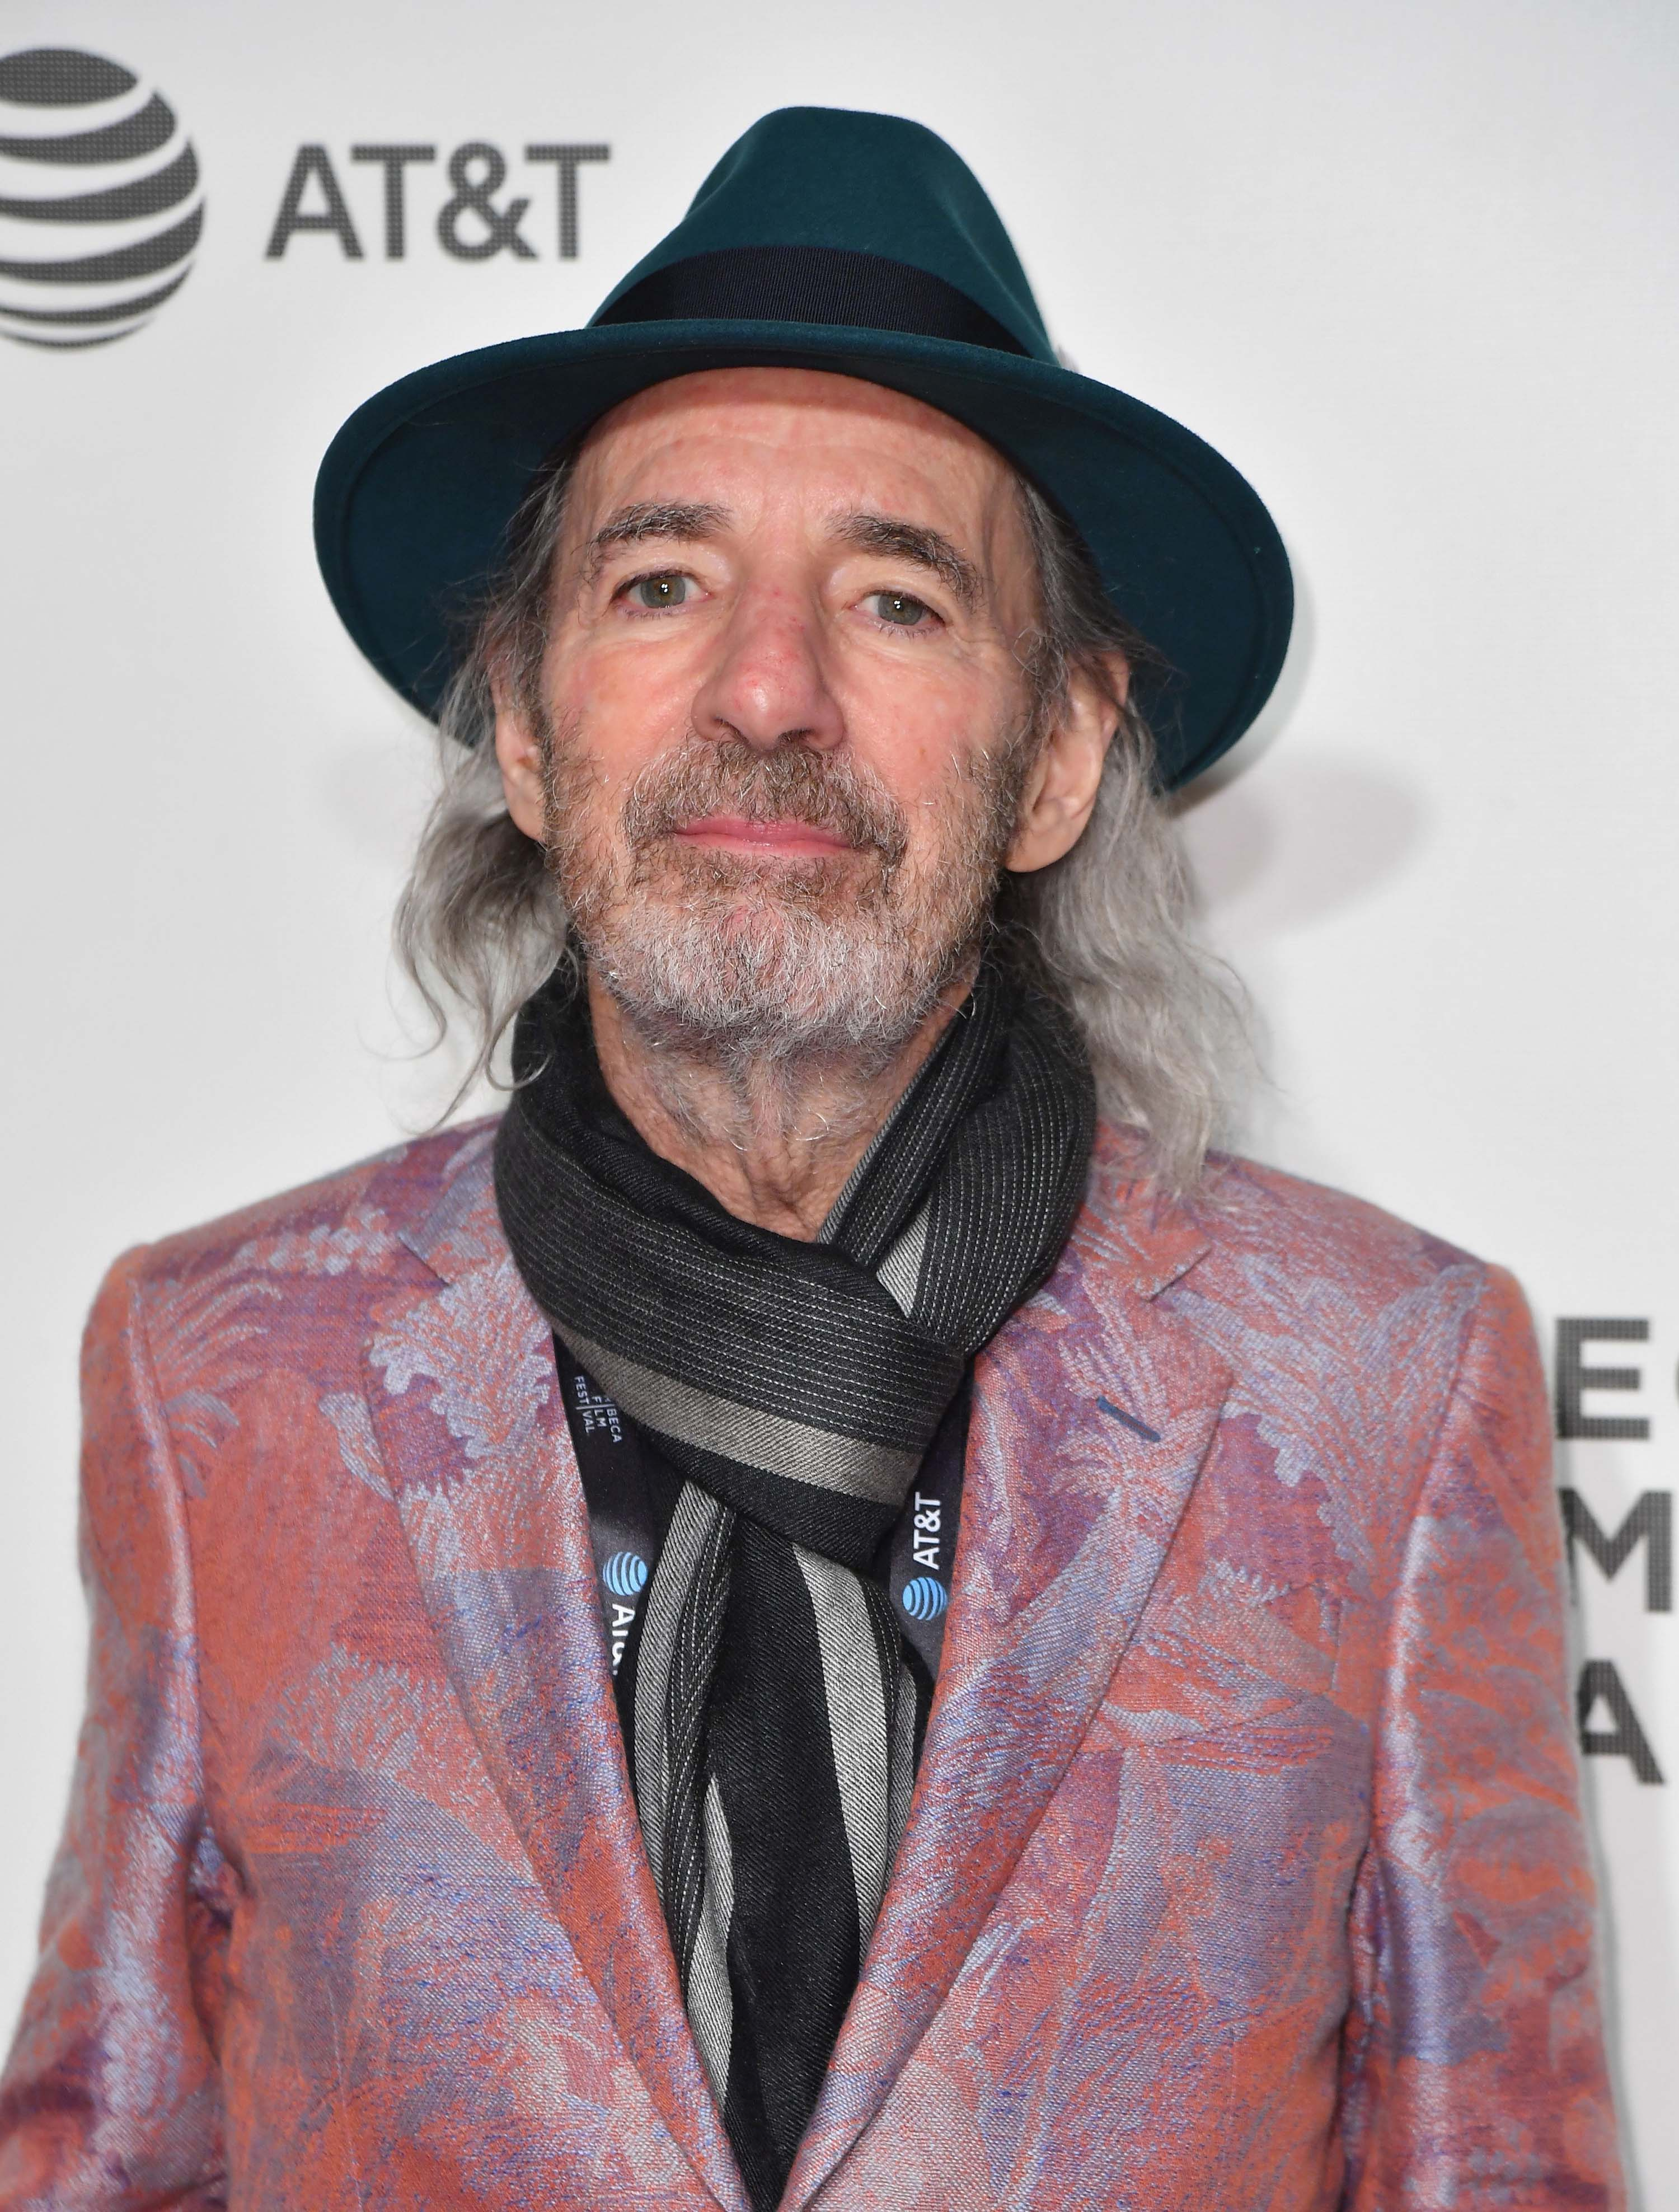 Harry Shearer appears critical of 'Simpsons' decision to stop White actors voicing non-White characters